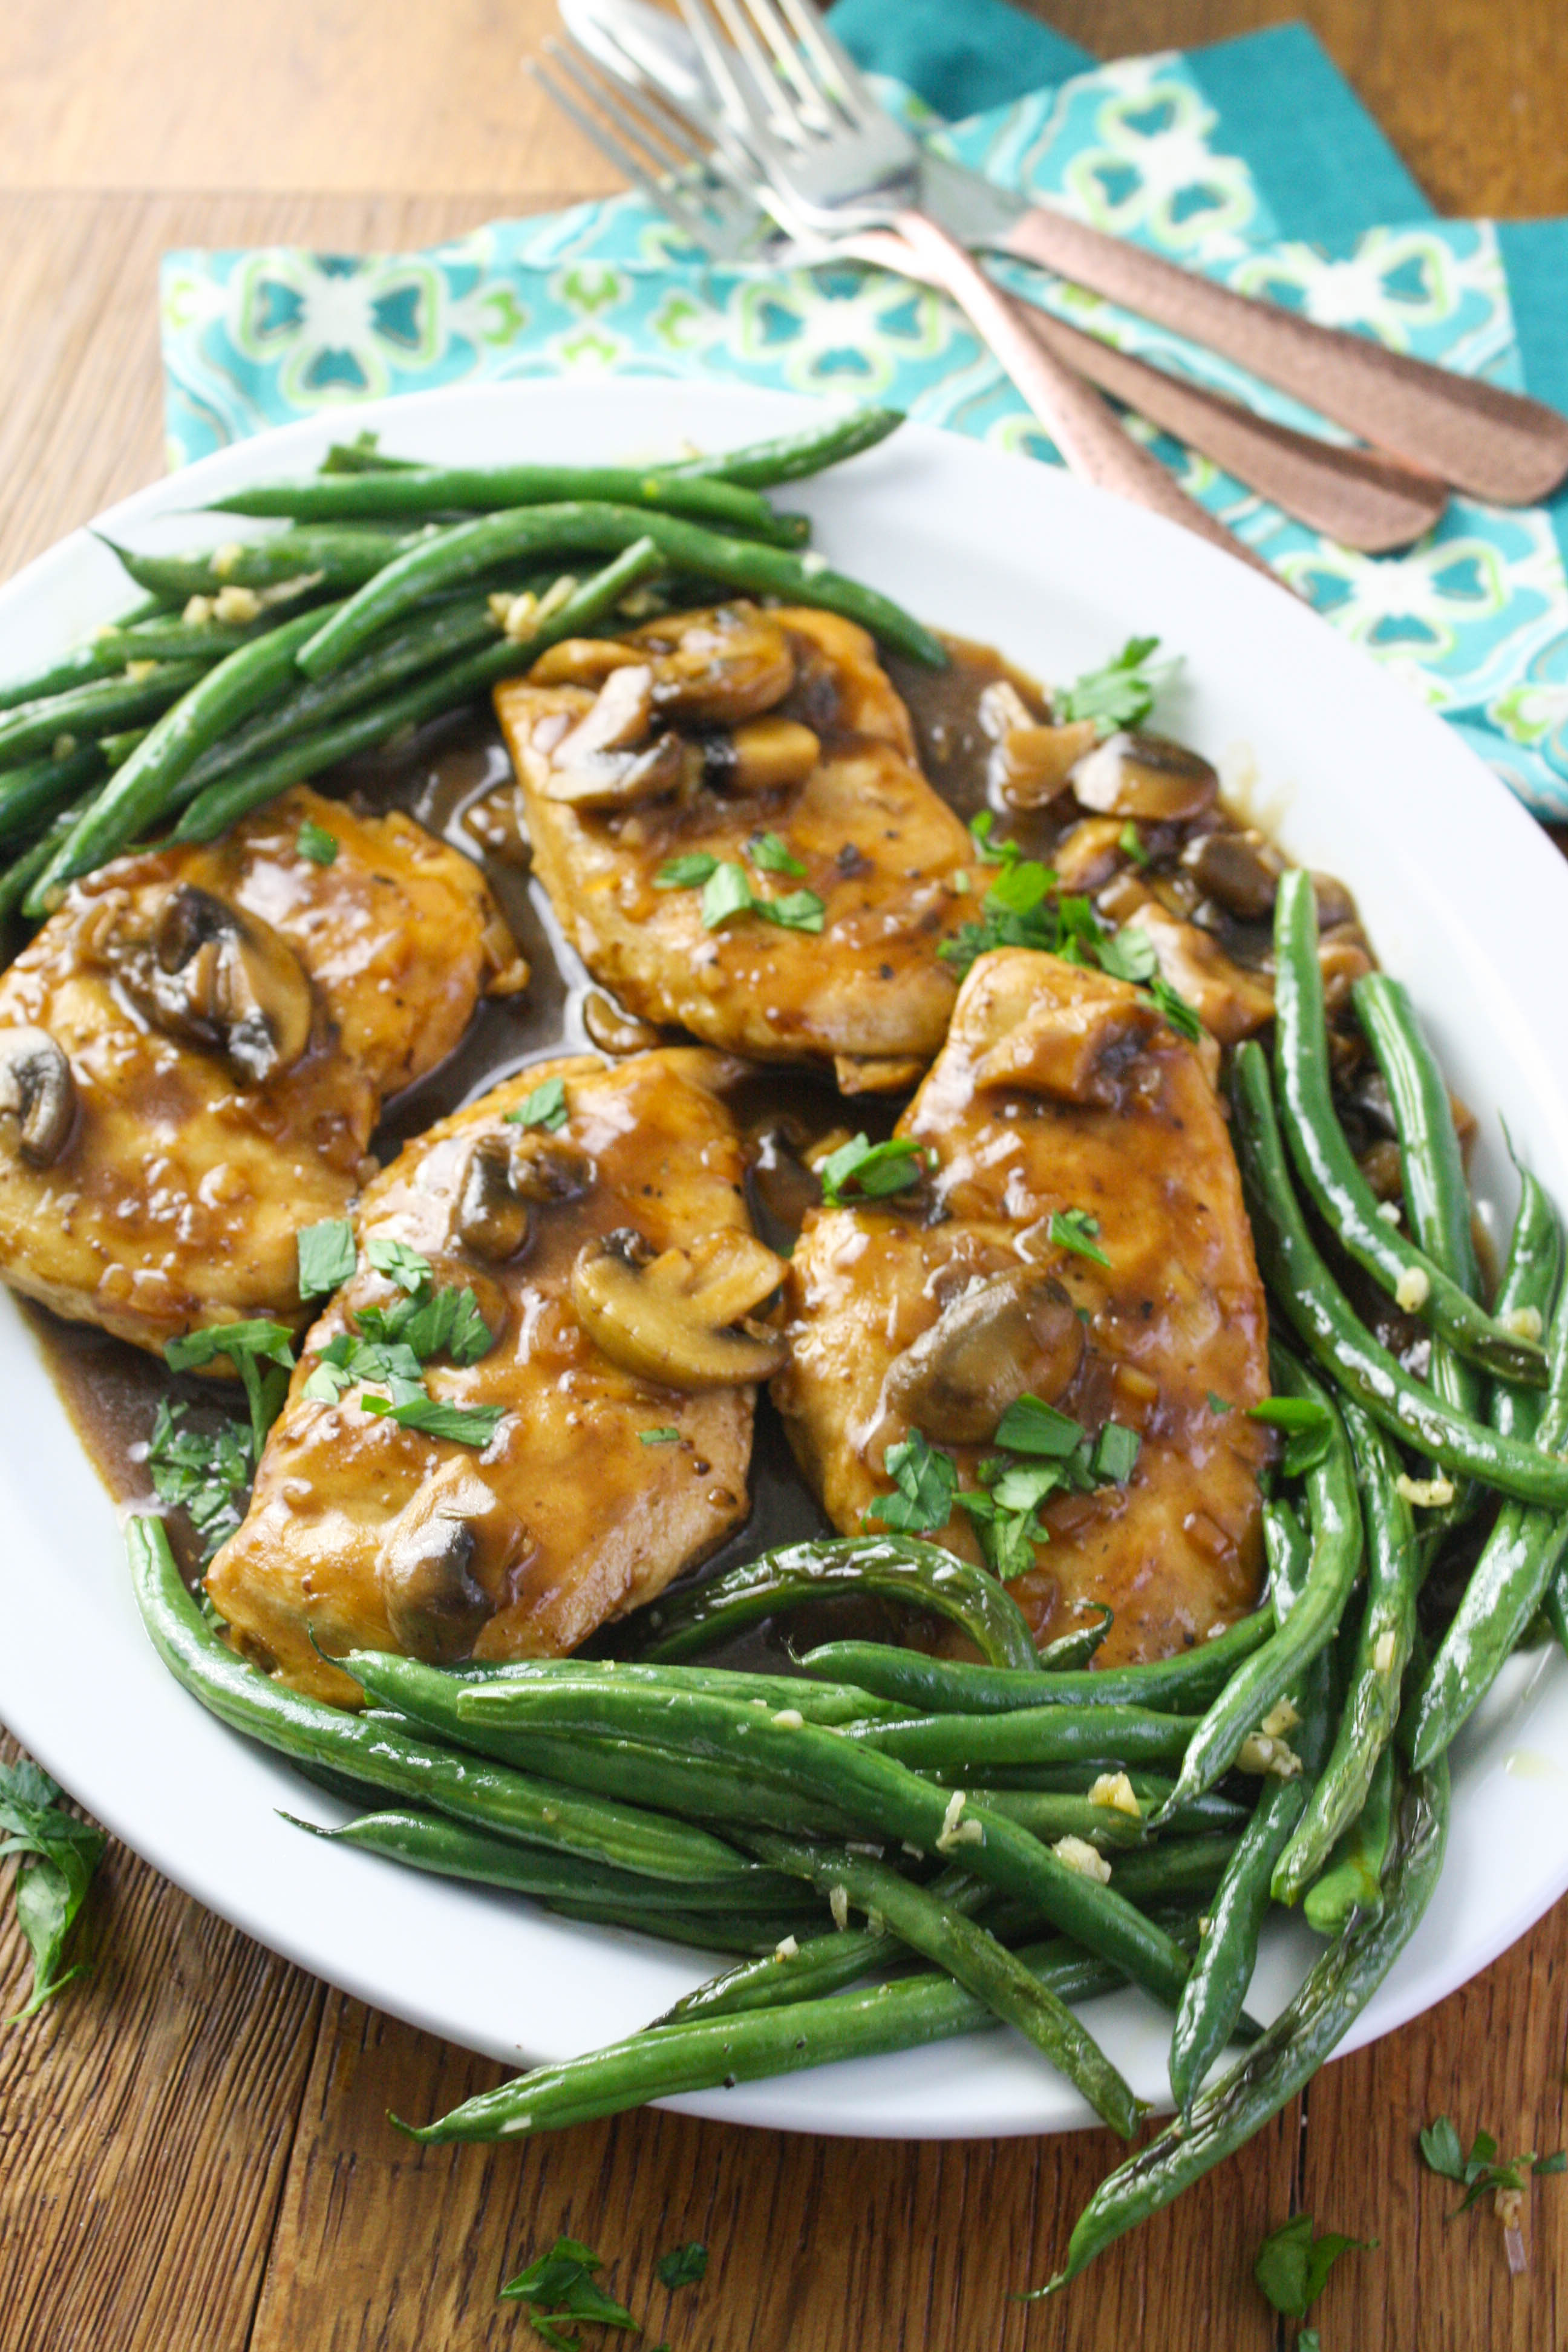 Chicken Madeira is saucy, rich and flavorful. This chicken dish makes a lovely meal with its rich flavors.